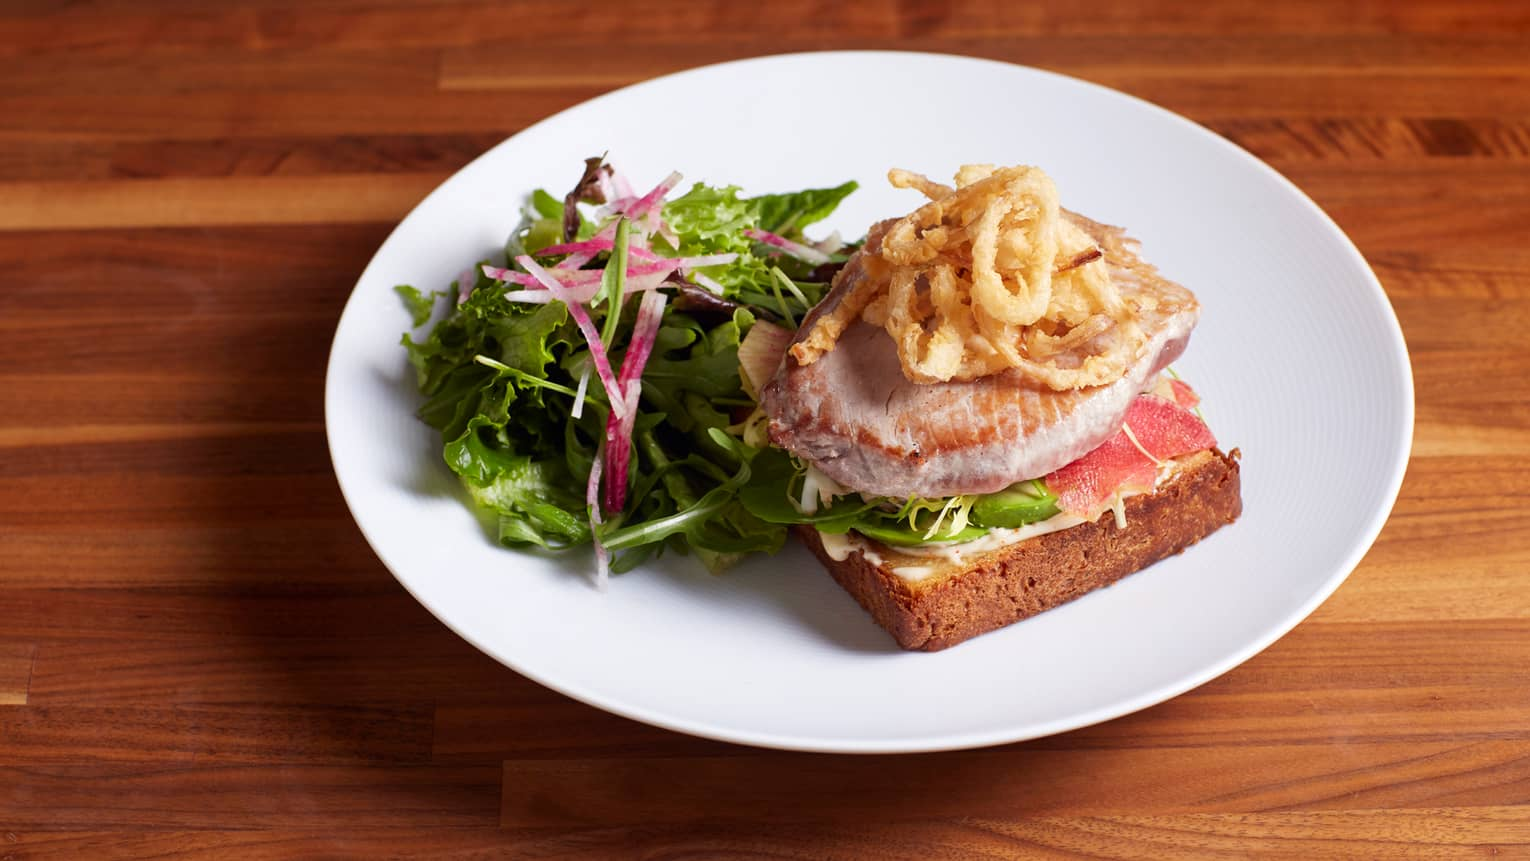 White plate with open-faced Ahi-tuna sandwich with fried crispy shallots, green garden salad on side